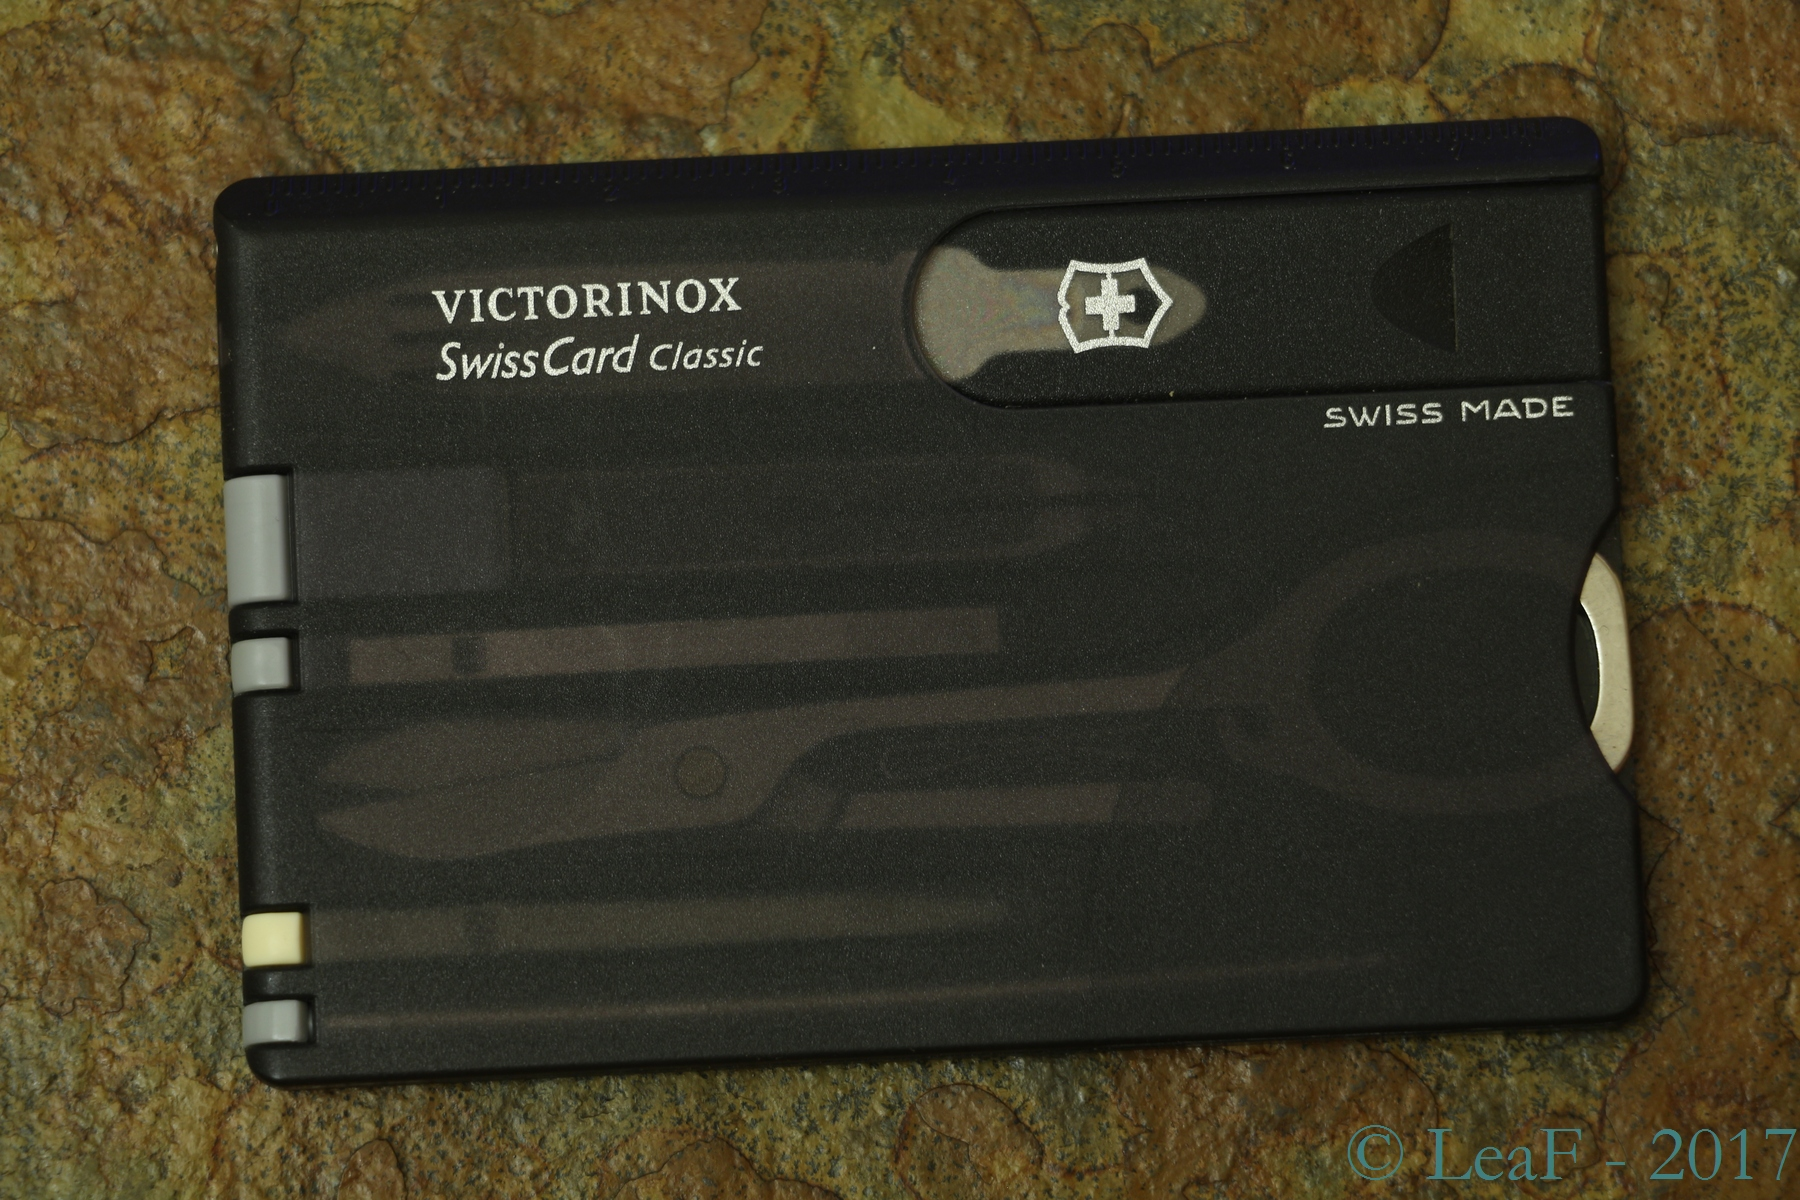 115 Swisscard Classic Leaf S Victorinox Knives Collection